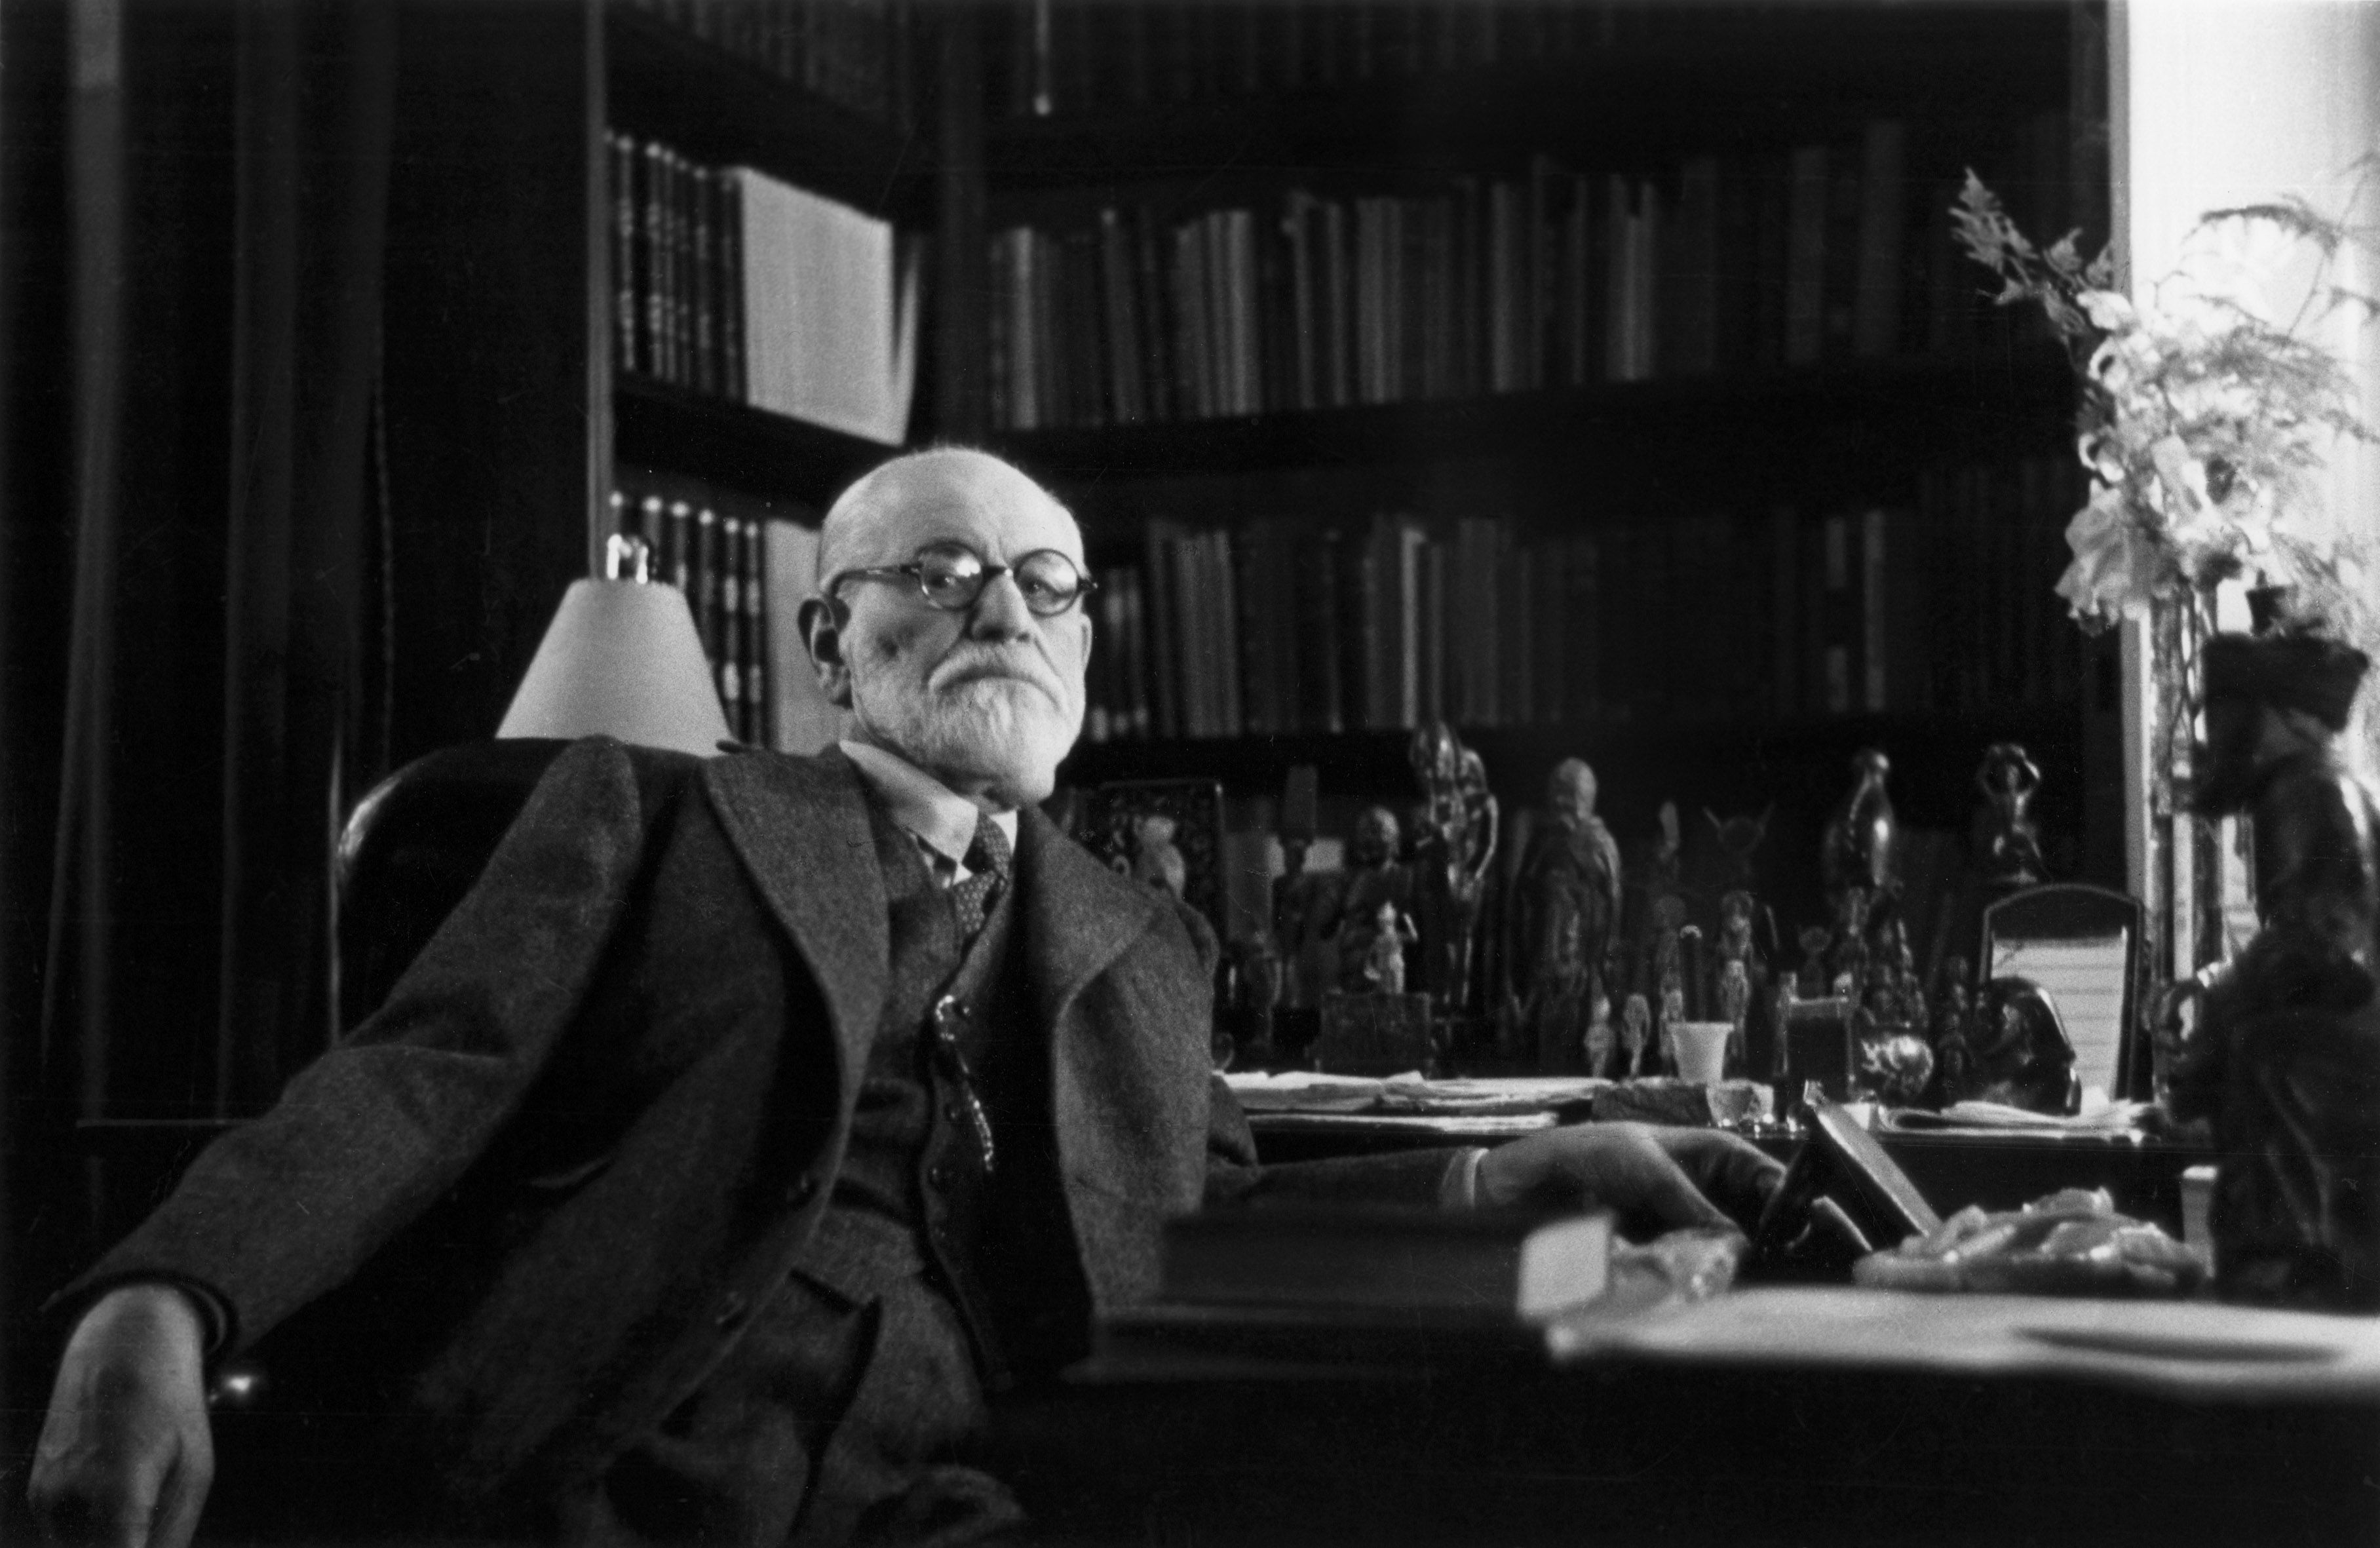 sigmund freud anxiety thesis Sigmund freud and otto rank: debates  anxiety freud  his reflections linked to the signal anxiety concept allowed freud to refute rank's thesis that defined.